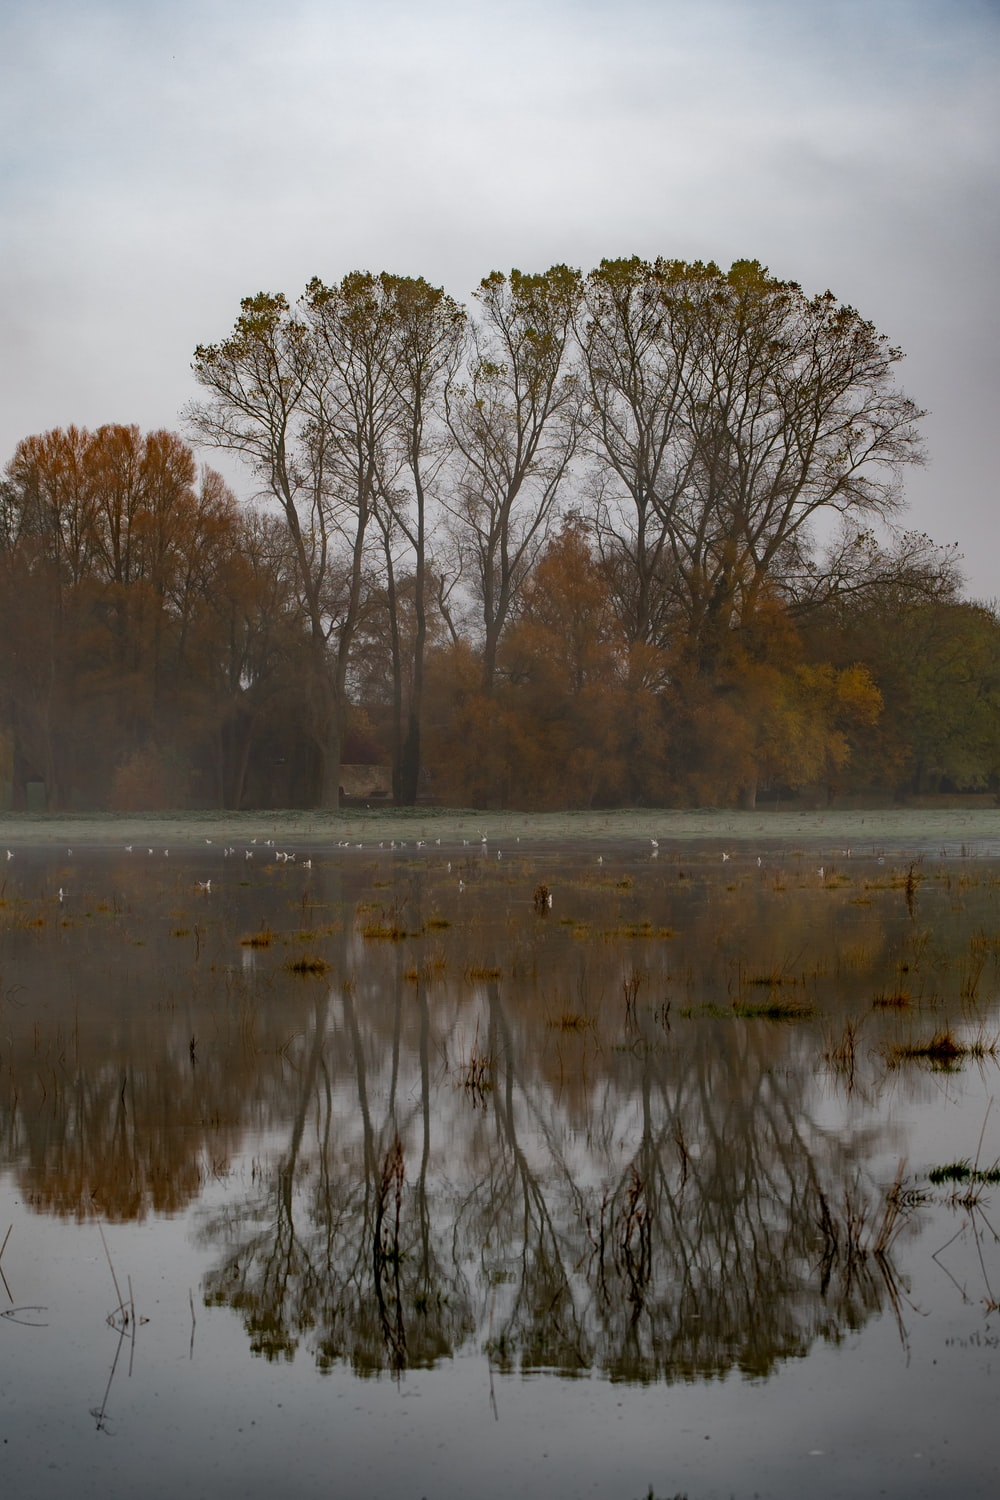 body of water surrounded with orange trees under gray sky